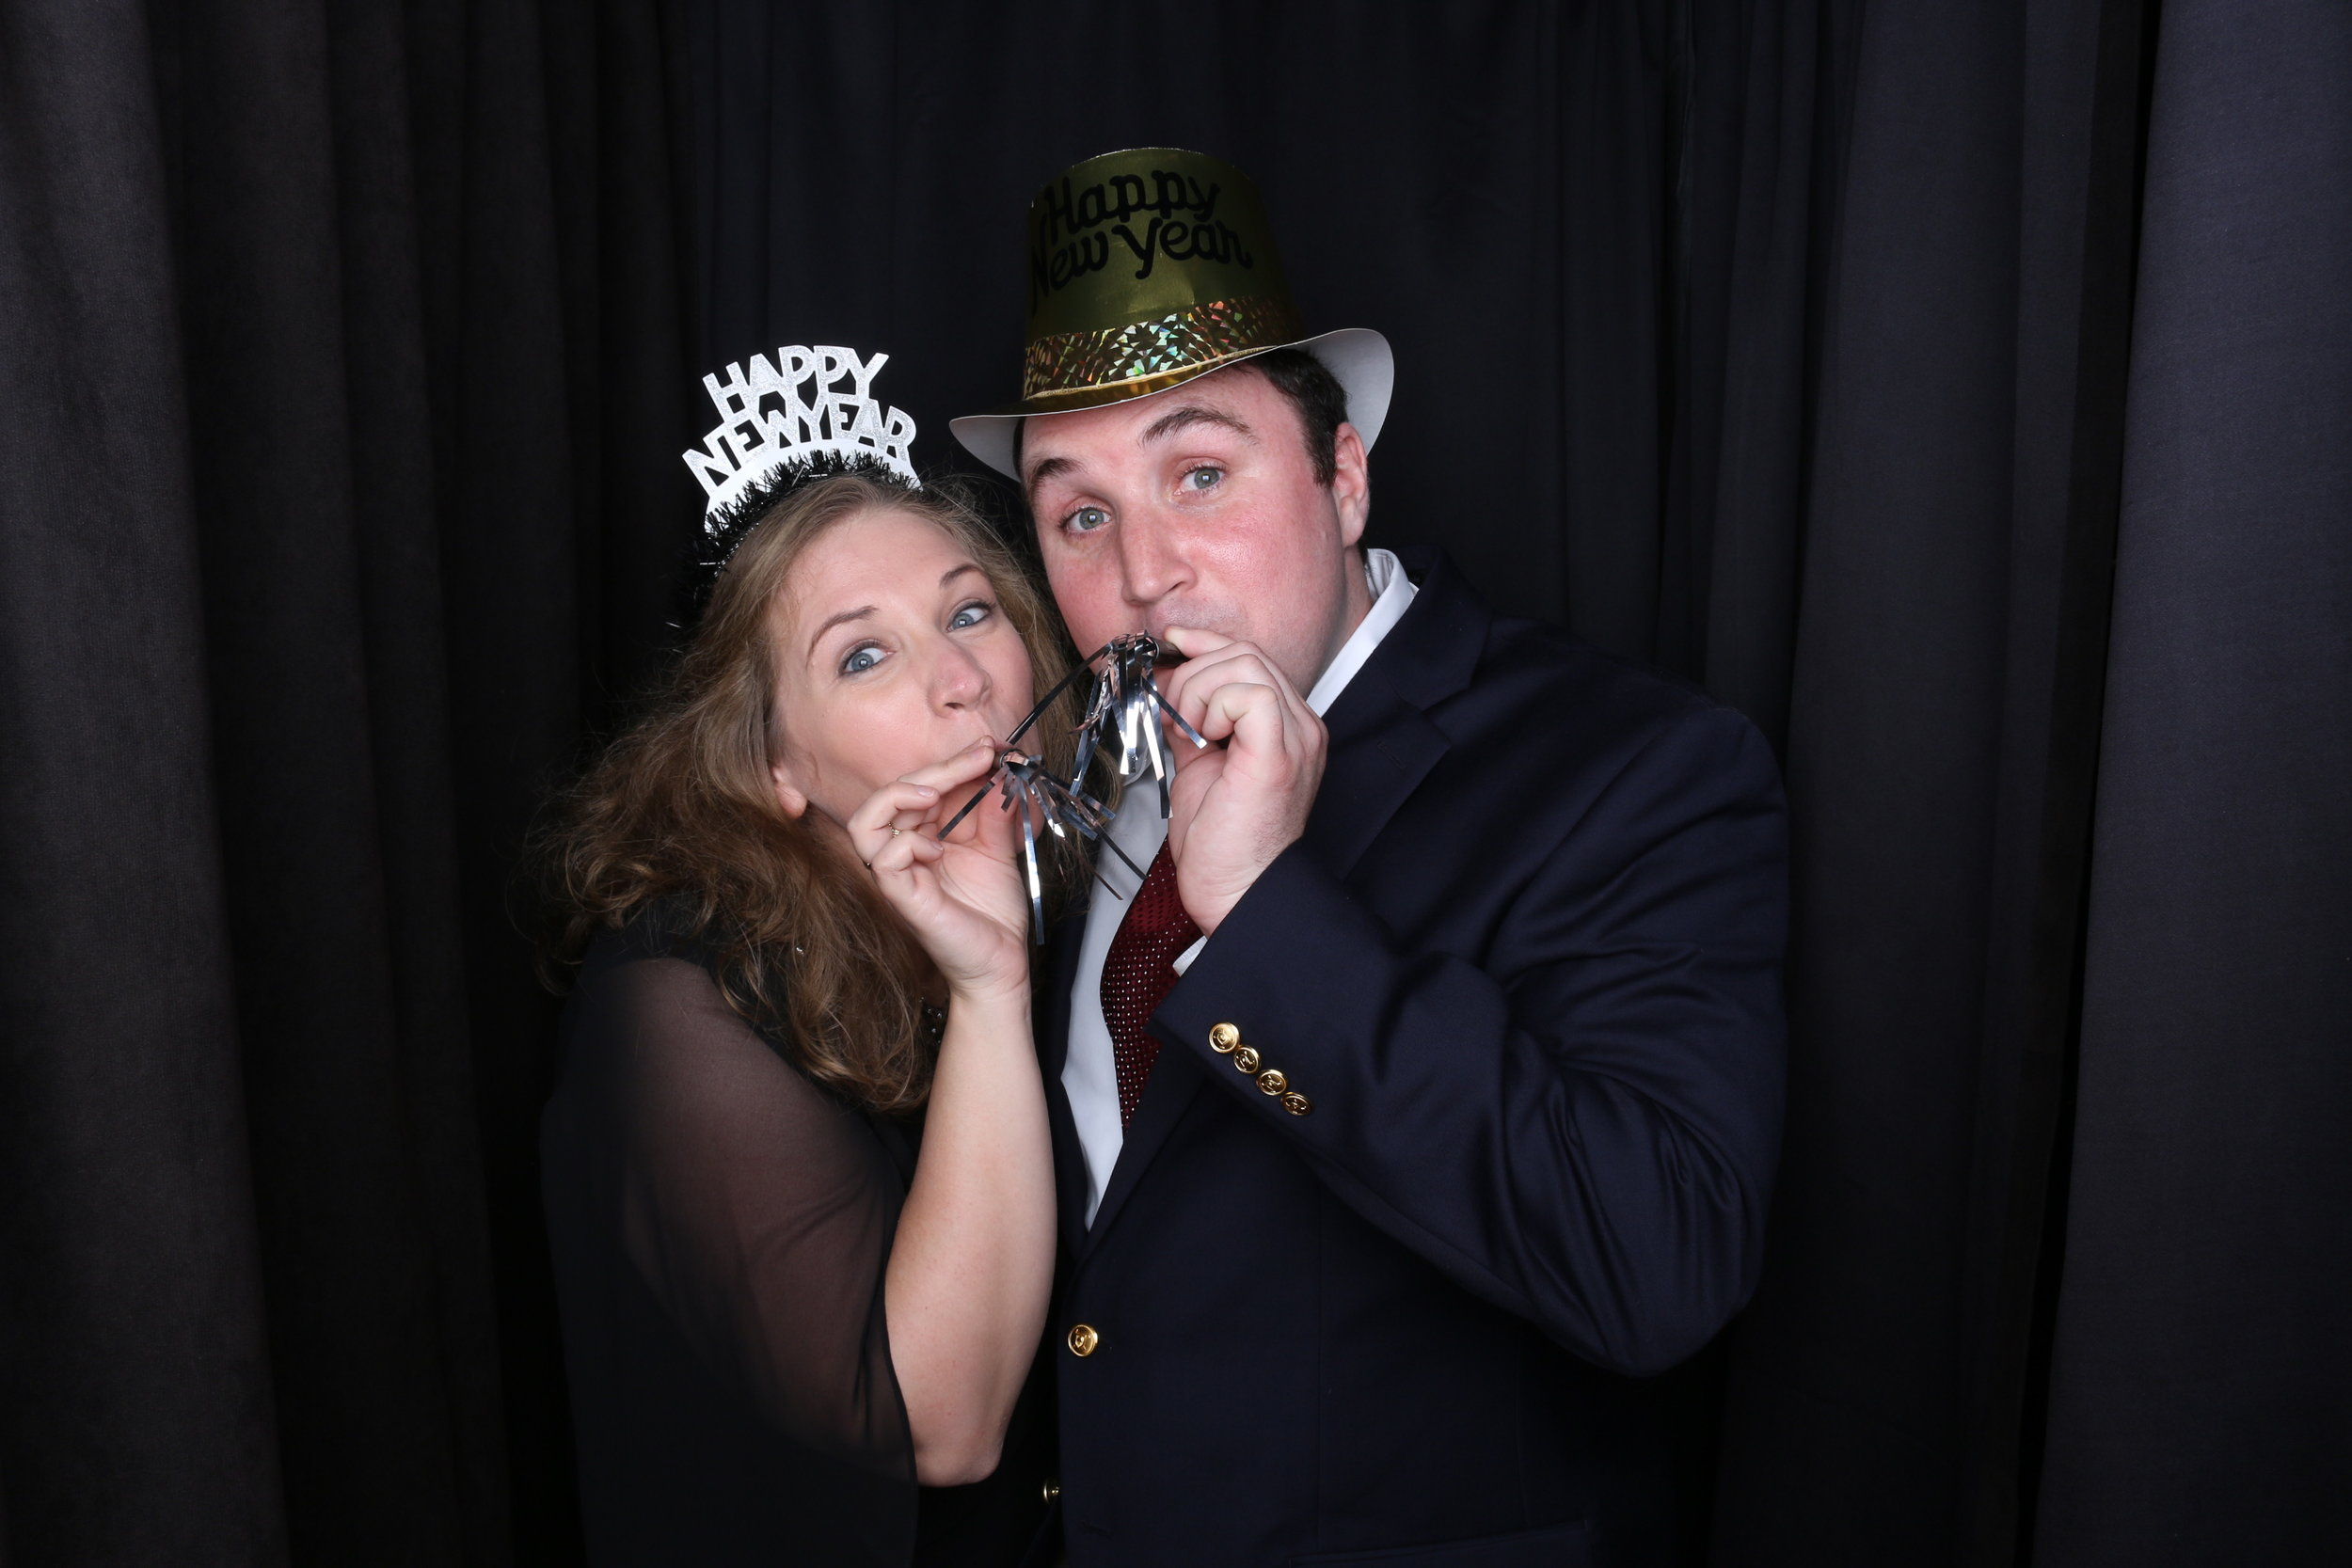 NYE - where will you be on january 31st at 11:59pm? hopefully inside the Loft on lake photo booth